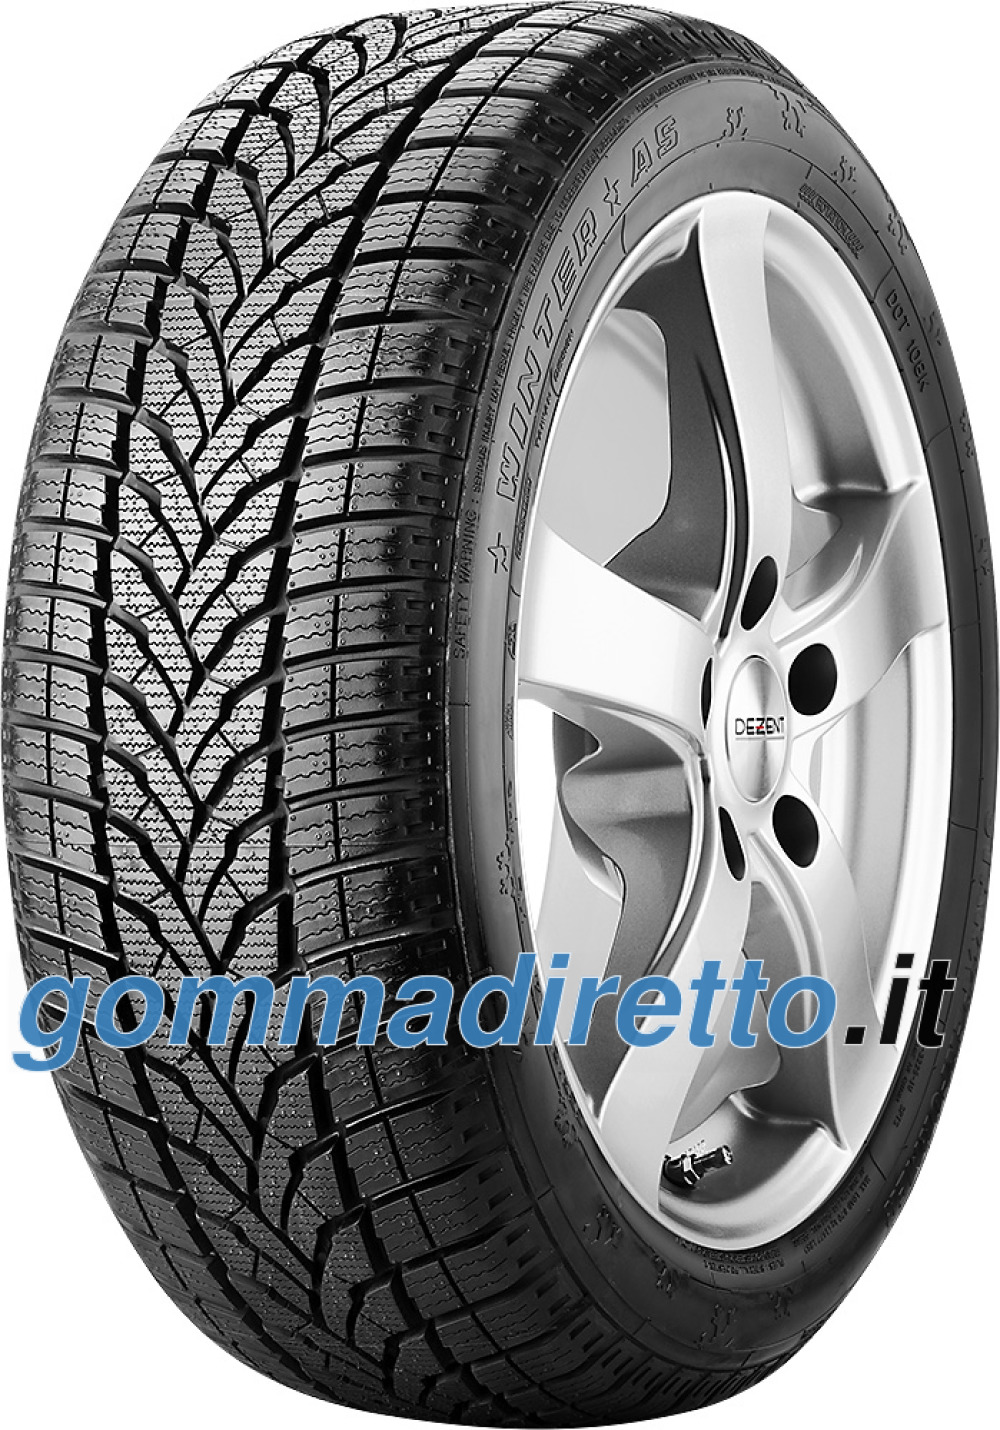 Star Performer SPTS AS ( 235/45 R18 98H XL )